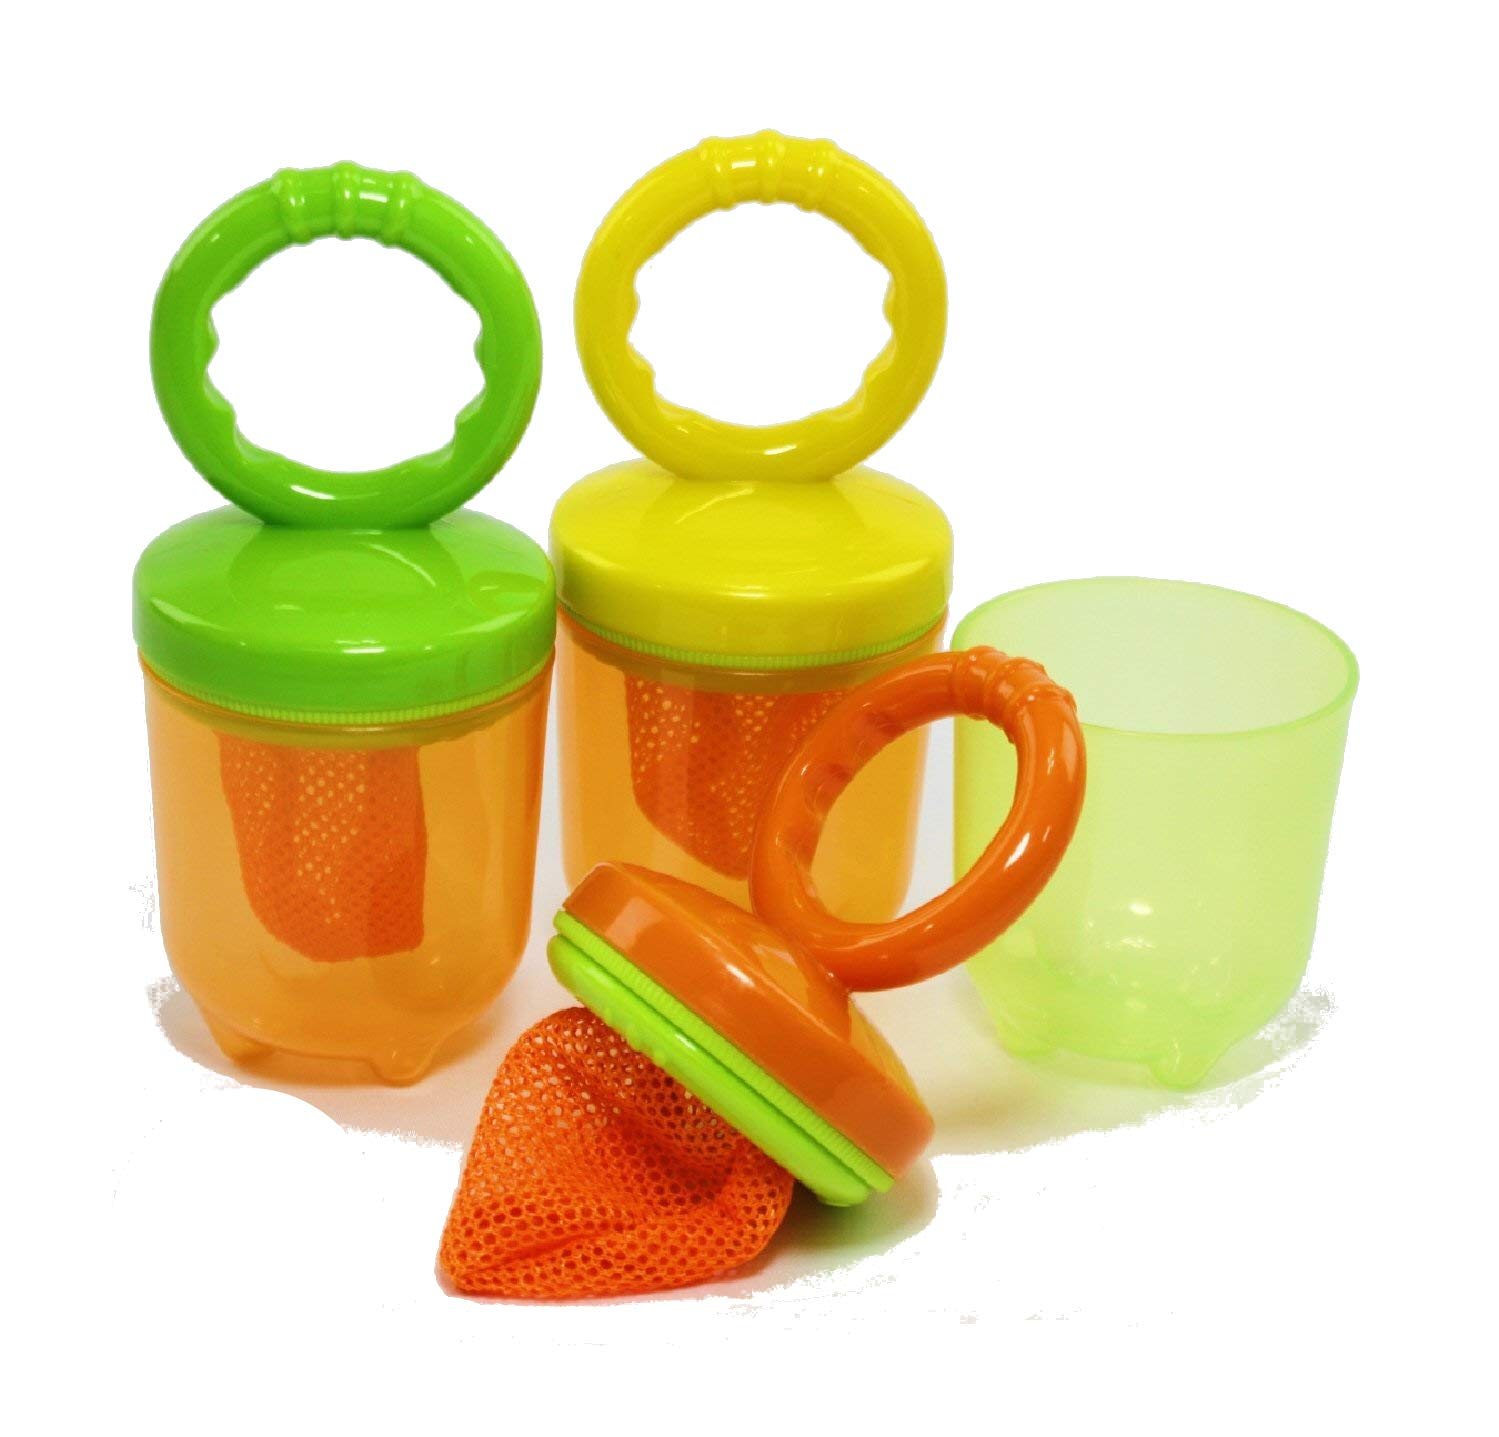 Five-A-Day Fresh Baby Food Feeders with Easy Grip Handles Gift Set - 3 Pack